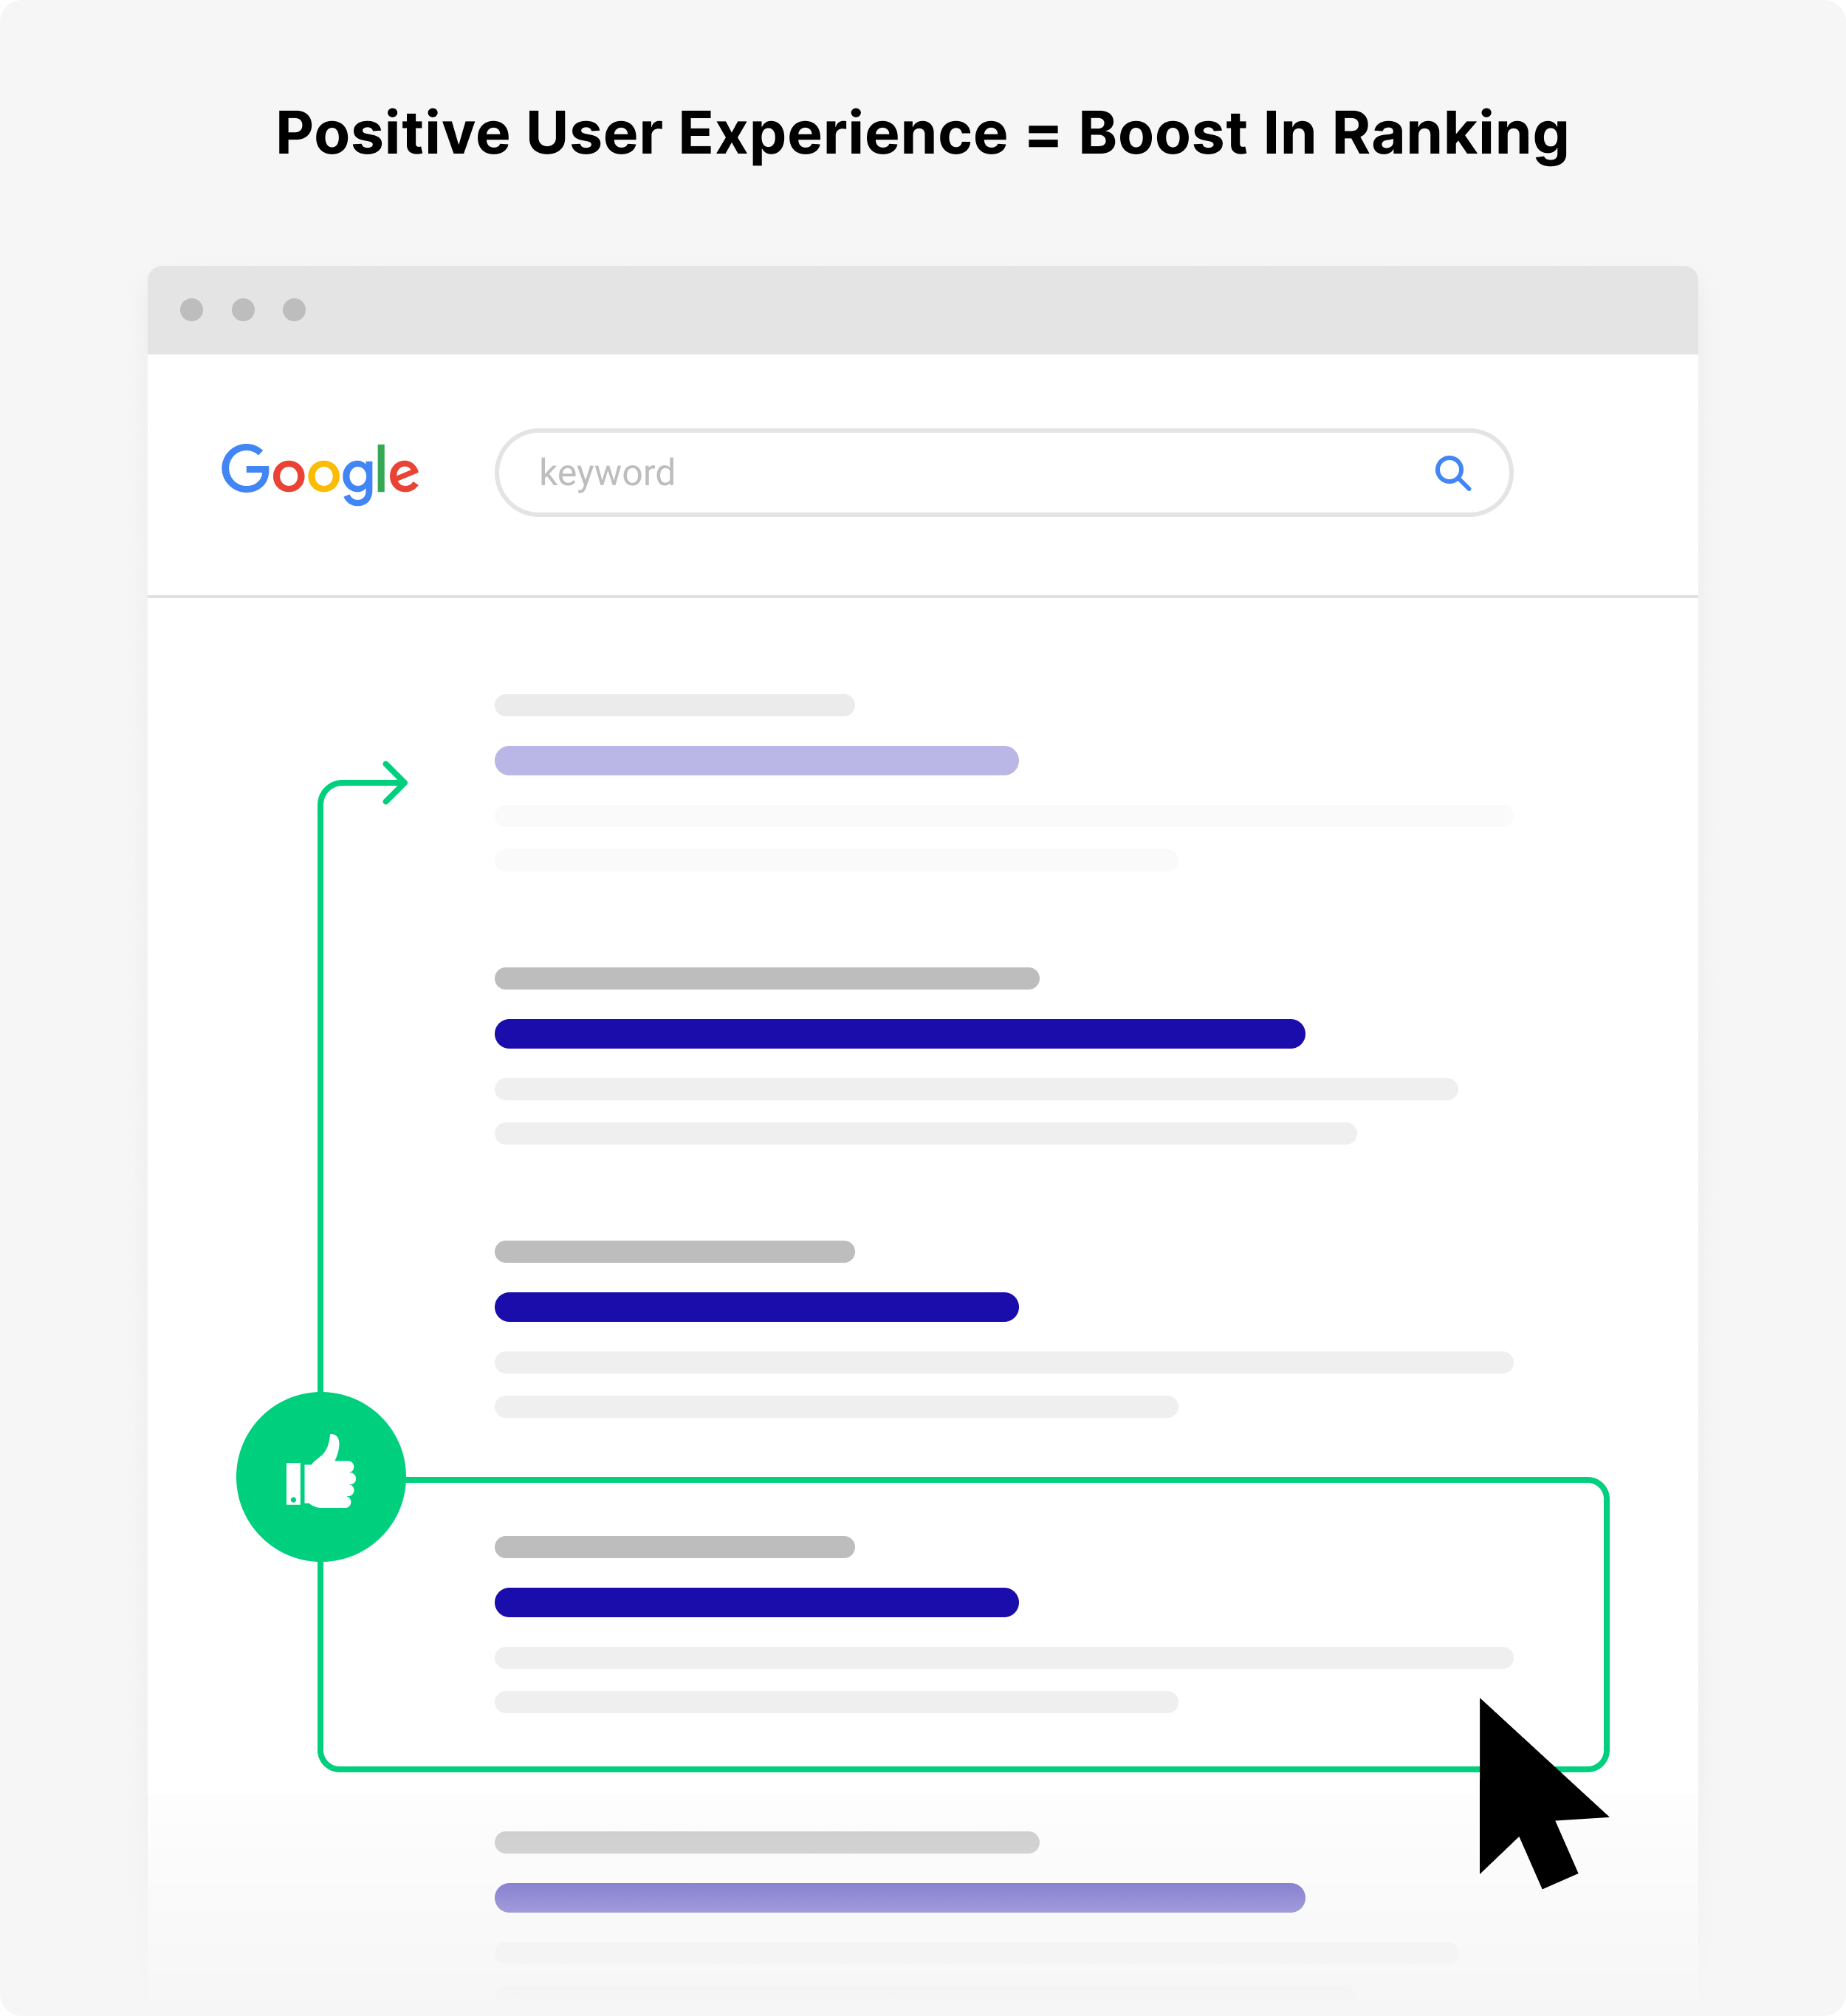 Positive user experience boosts ranking